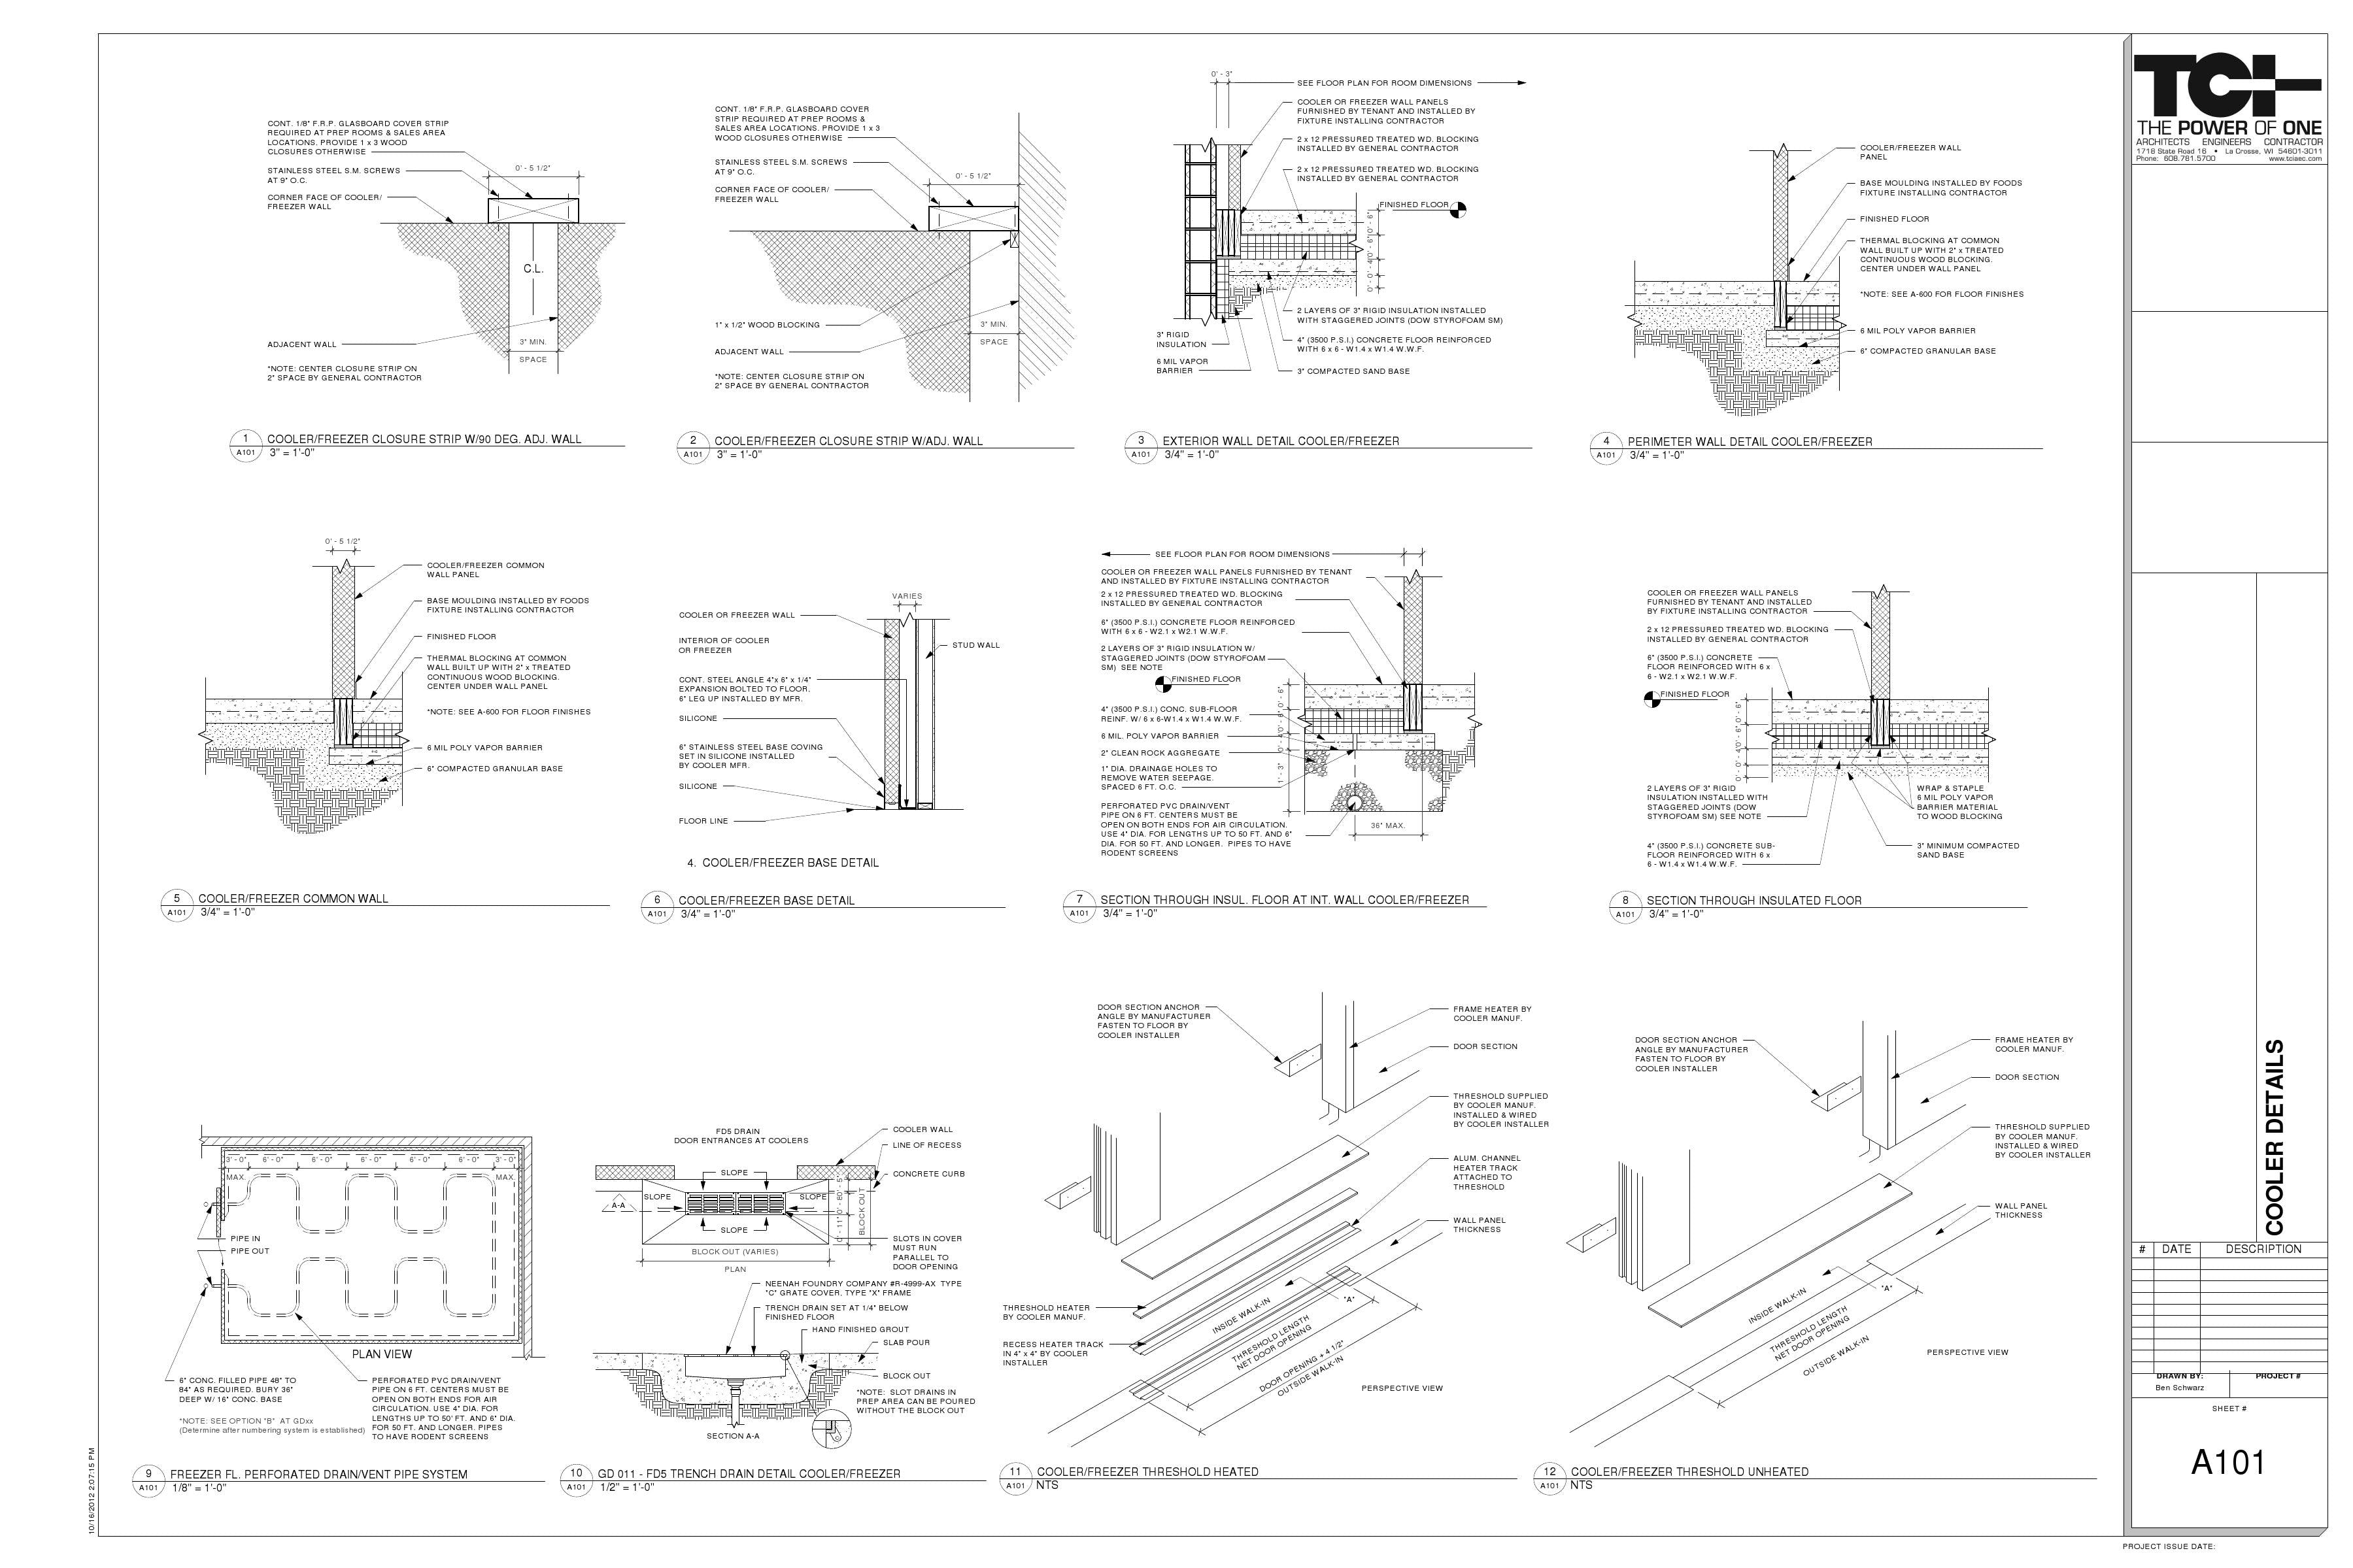 Trench drain detail - Grocery Details Please Feel Free To Contact Me For A Higher Resolution Pdf